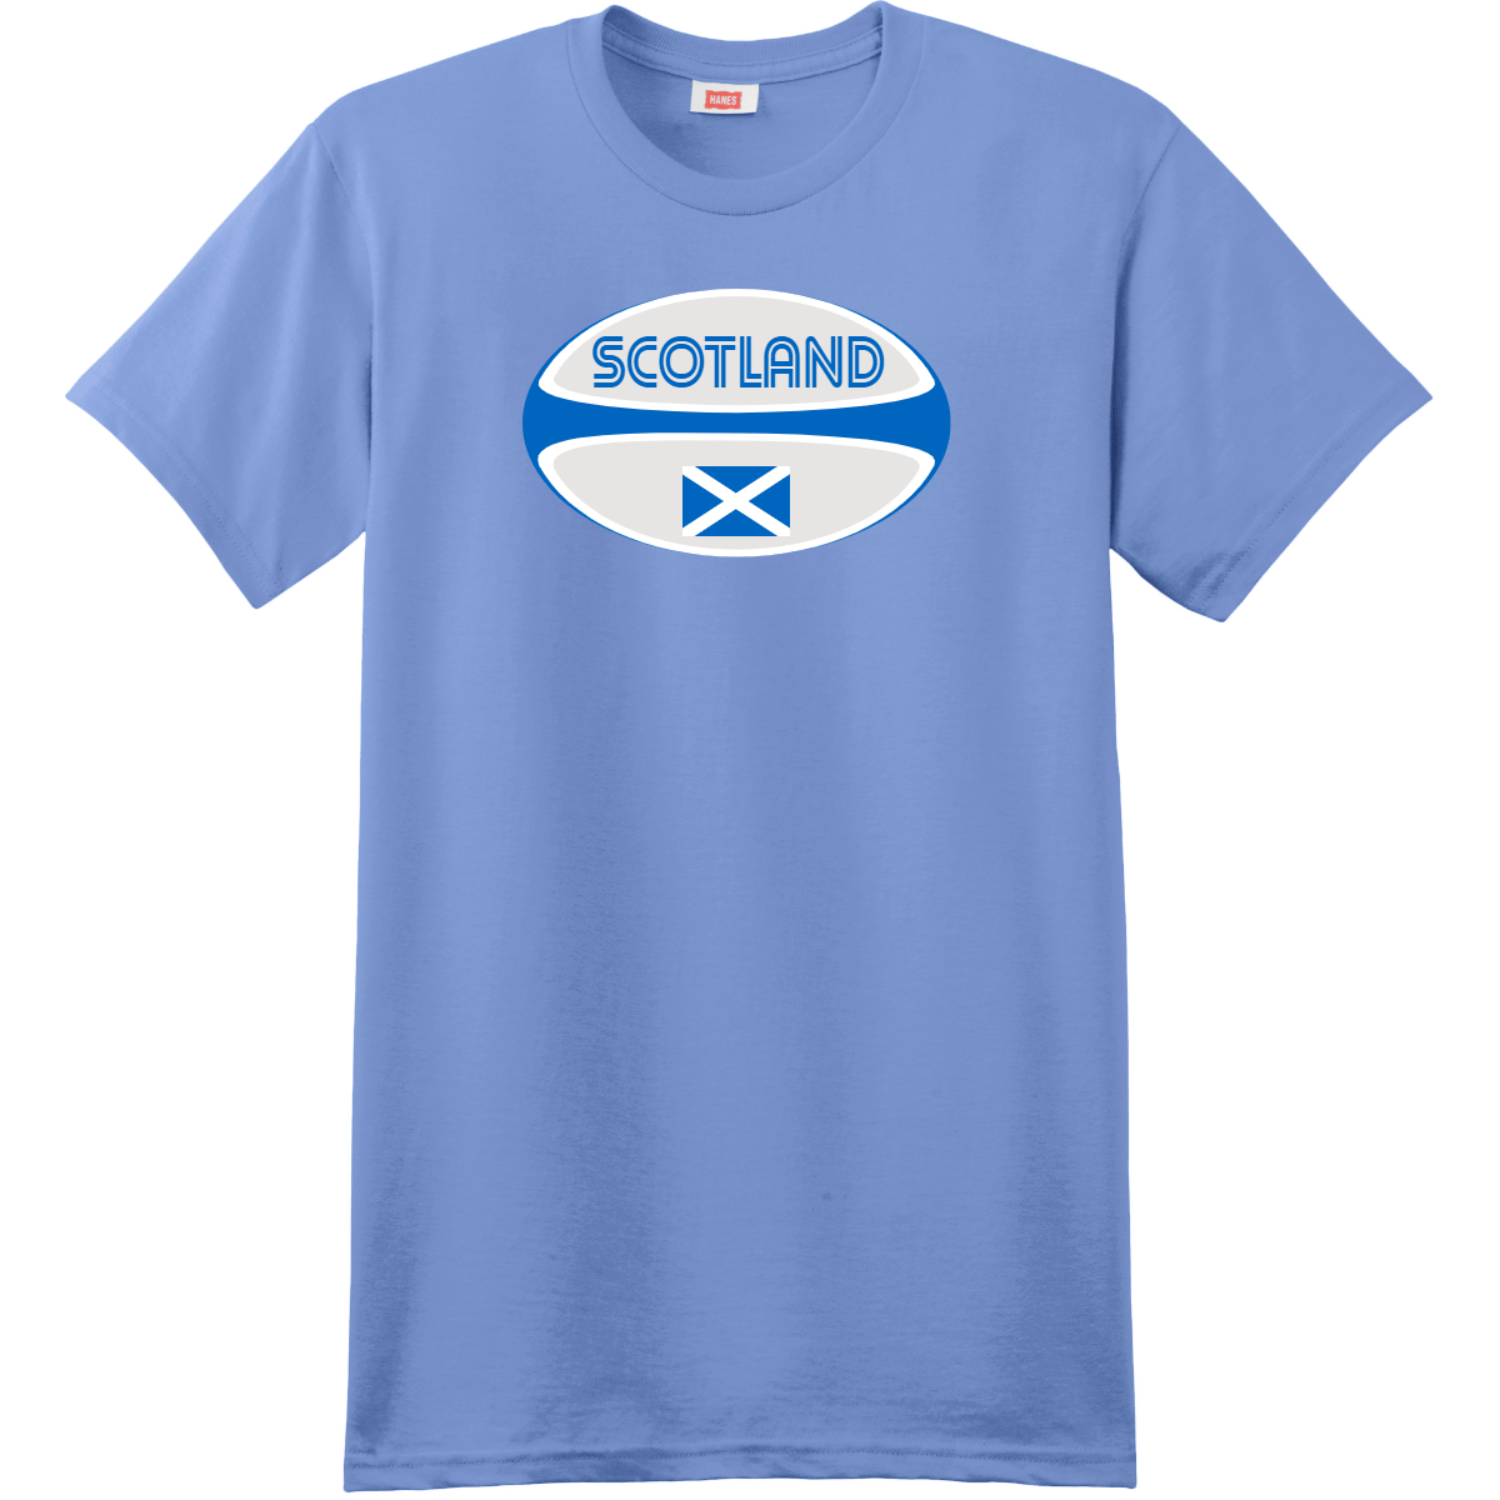 Scotland Rugby Ball T-Shirt Carolina Blue Hanes Nano 4980 Ringspun Cotton T Shirt